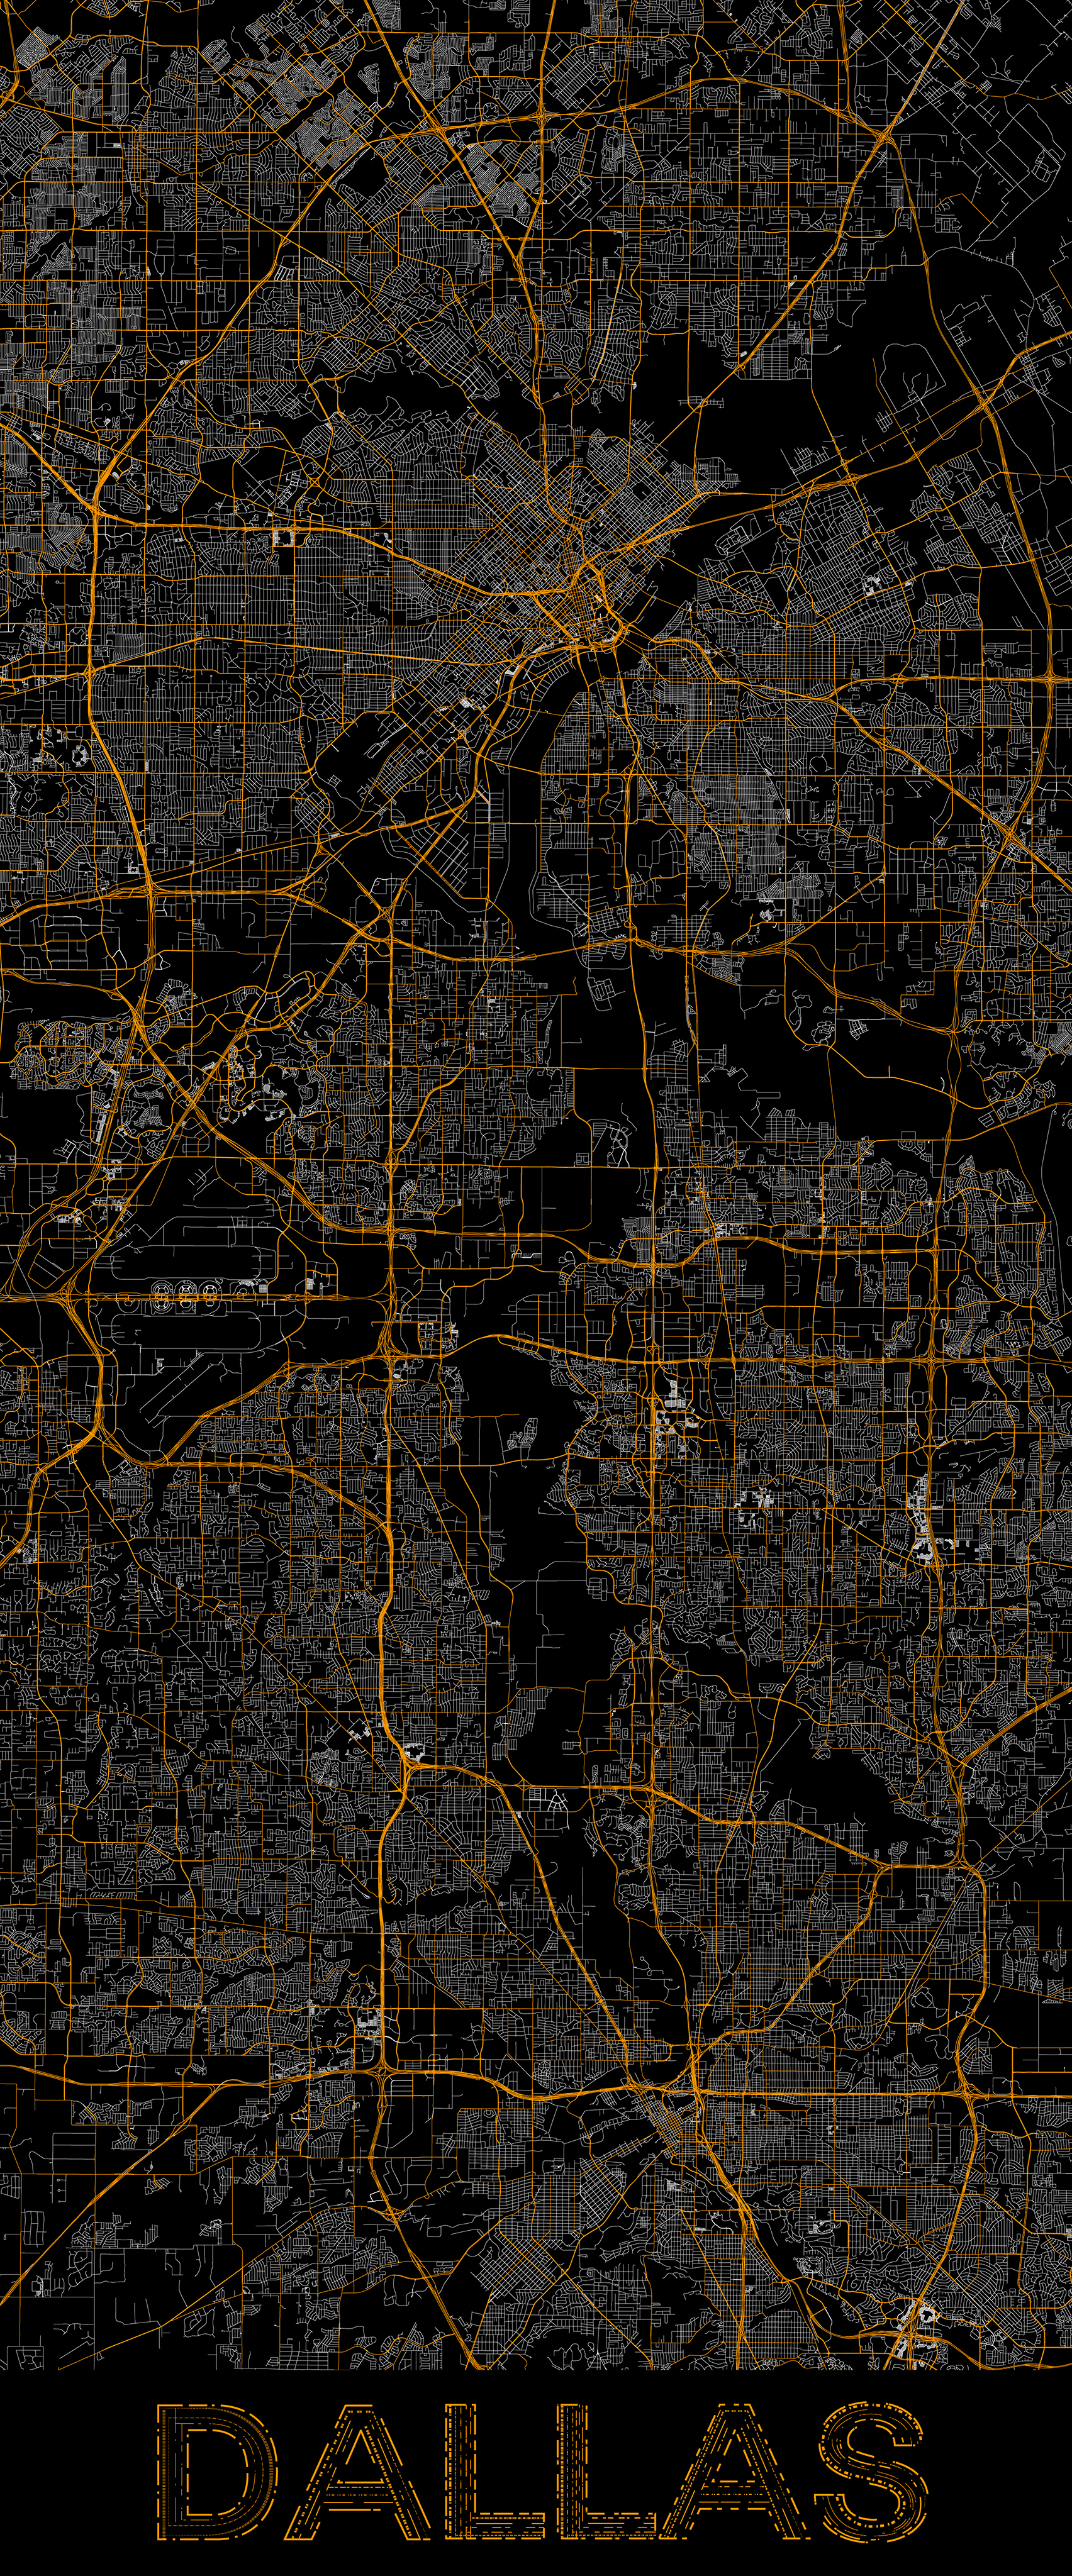 City map illustration of Dallas created using Maperitive, OpenStreetMap and Adobe Illustrator.